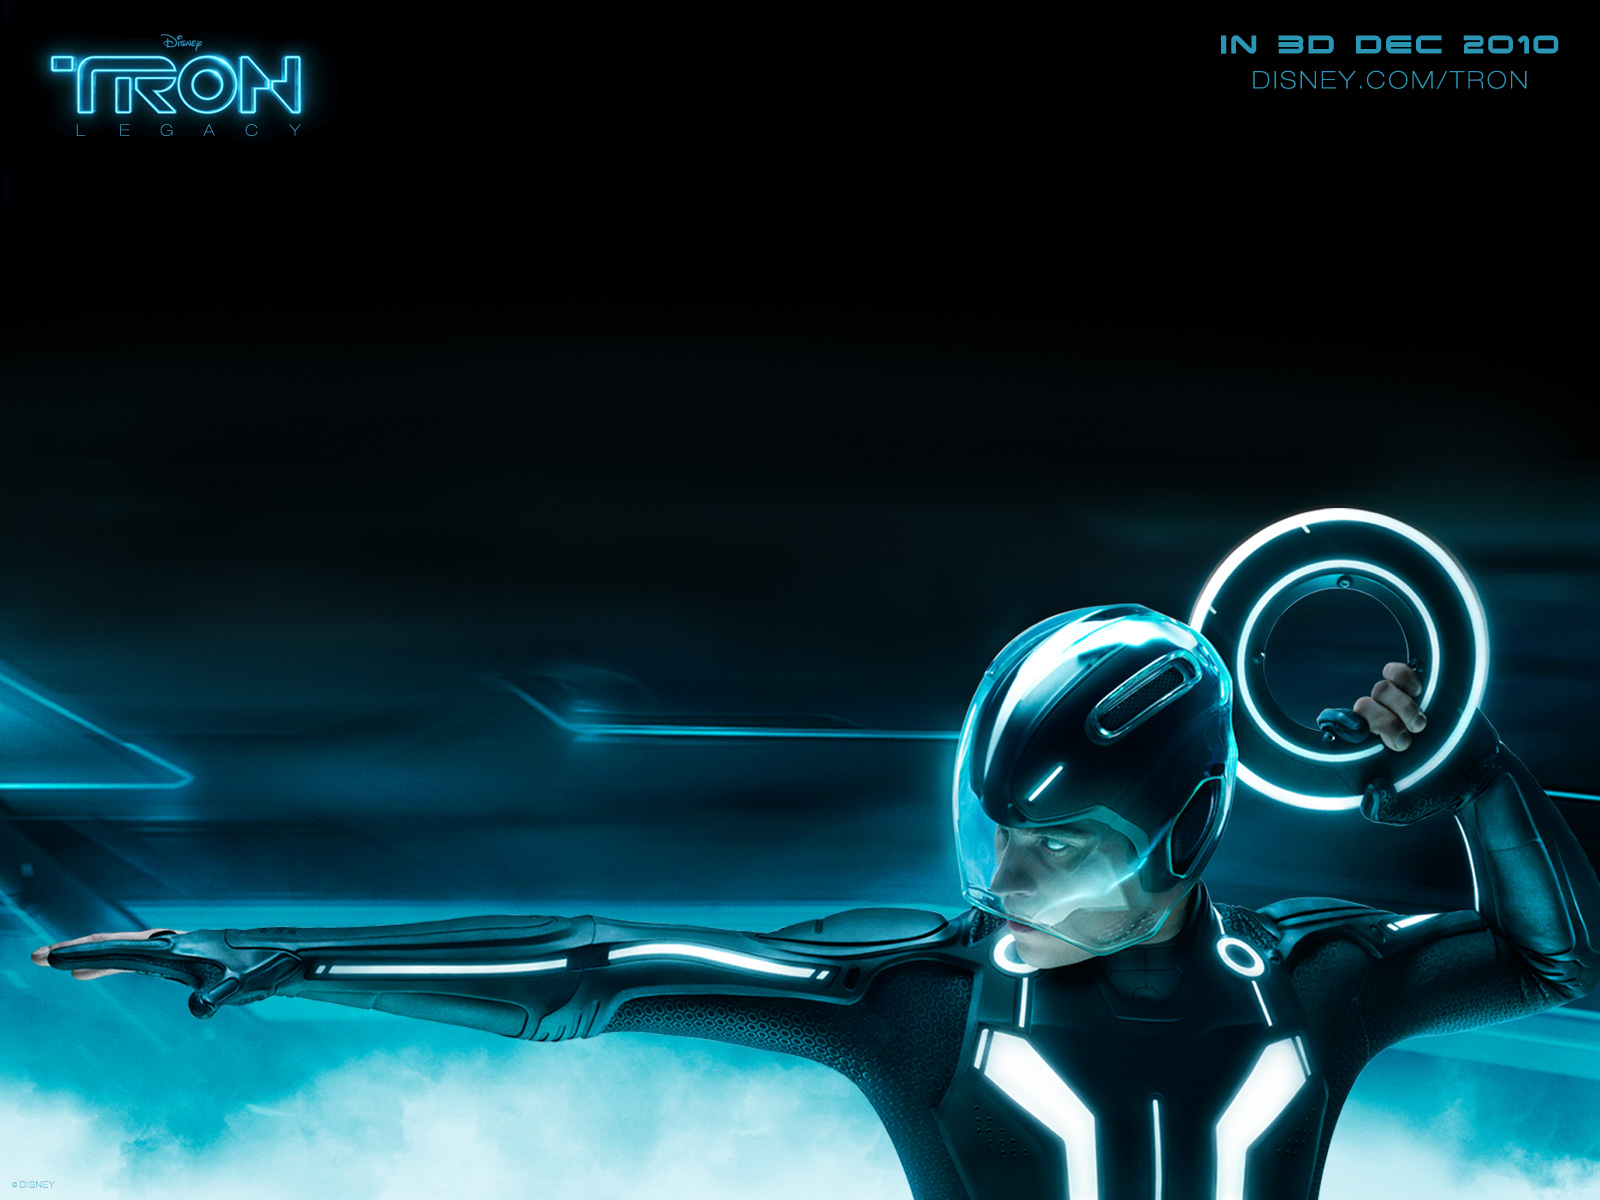 sam flynn from disney's tron: legacy movie desktop wallpaper